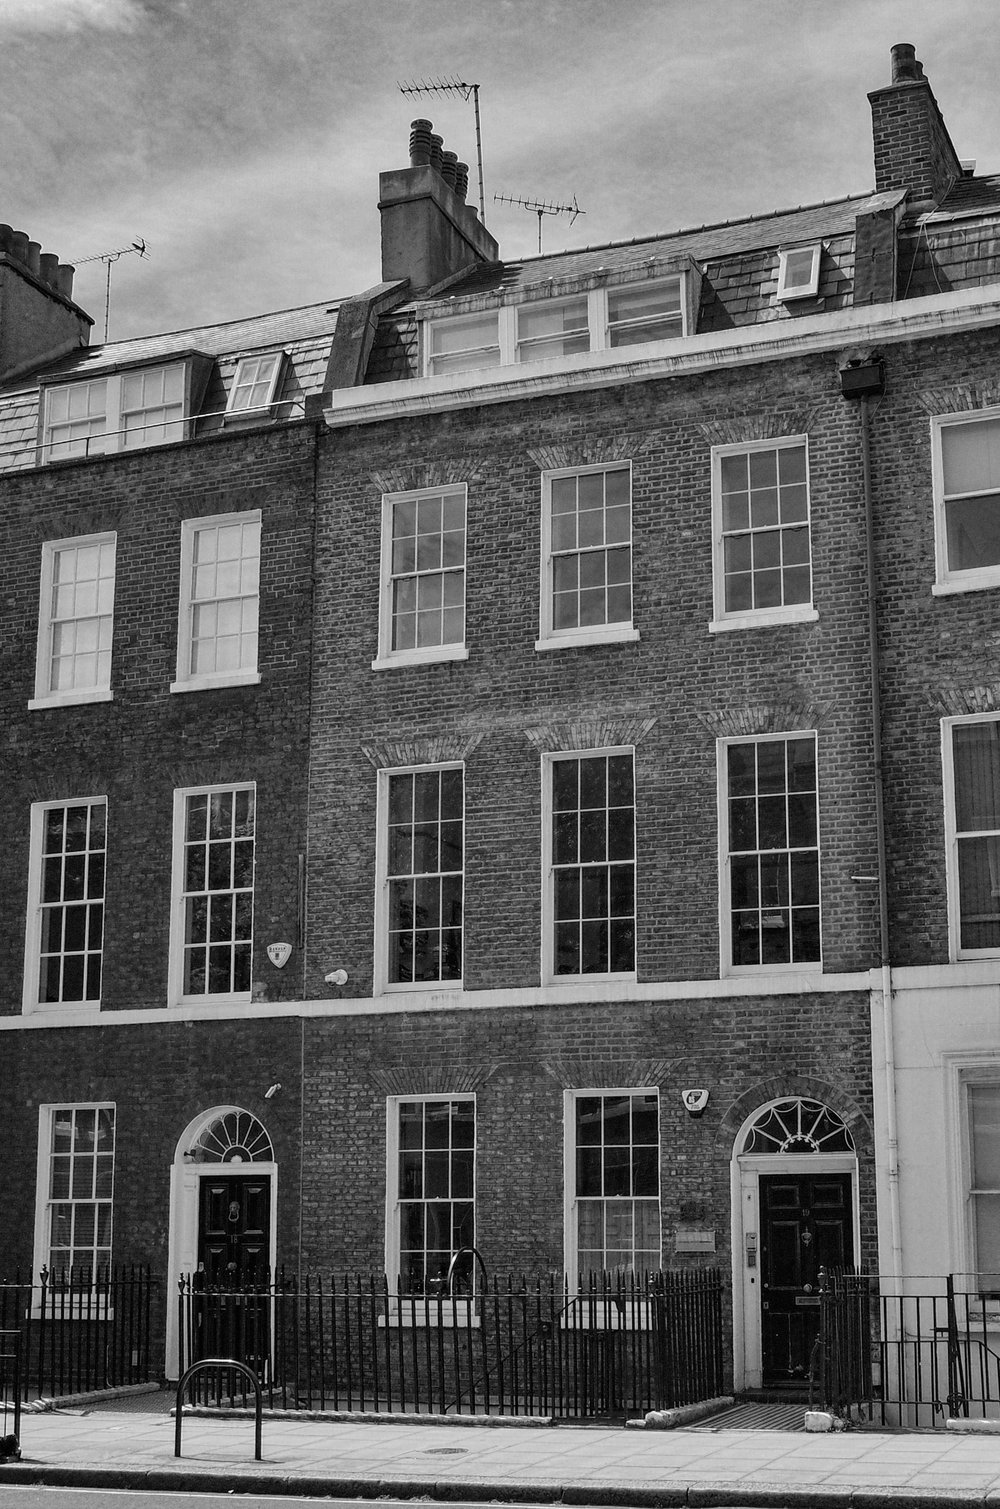 The frontage of No. 19 Doughty Street, once home to The Racing Pigeon. The precious birds lived in lofts on the roof, as Mike found out when he went to solicit their services for a secret mission